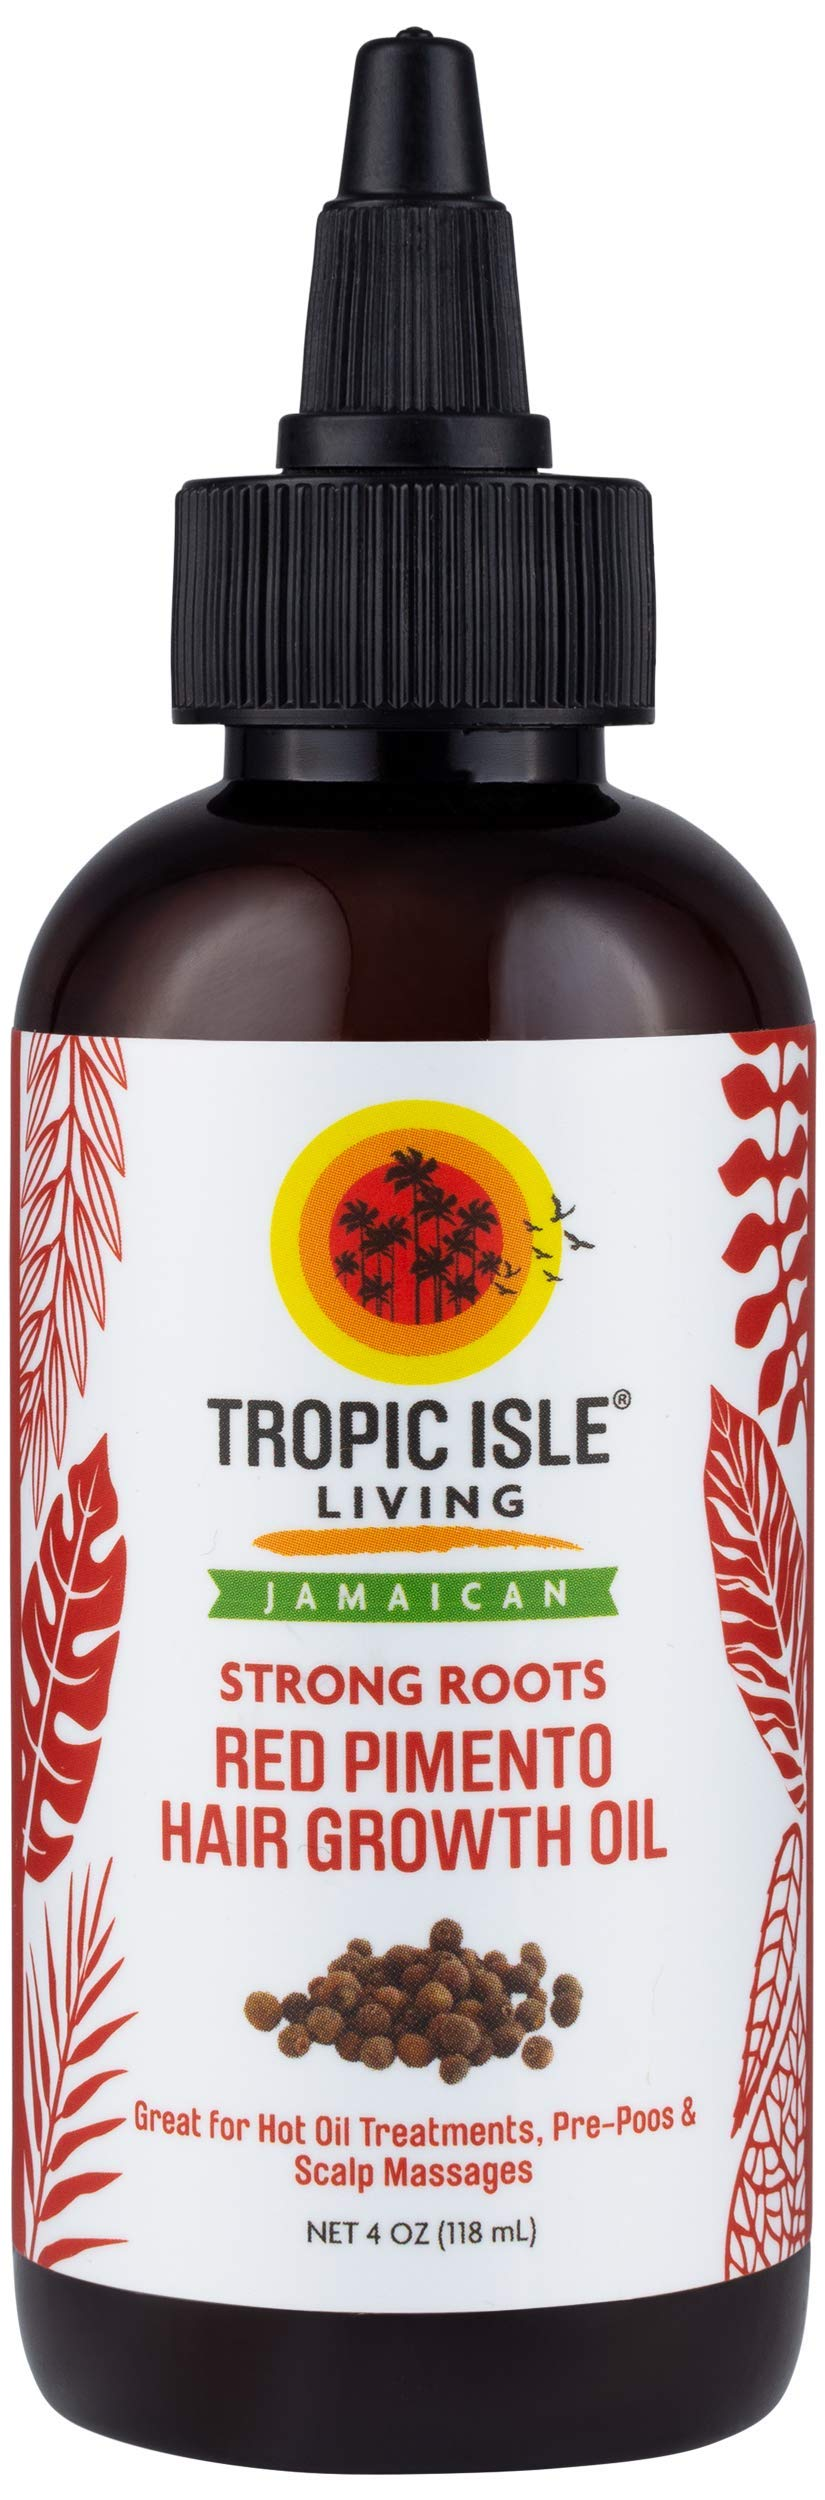 Tropic Isle Living Strong Roots Red Pimento Hair Growth Oil (4 oz)